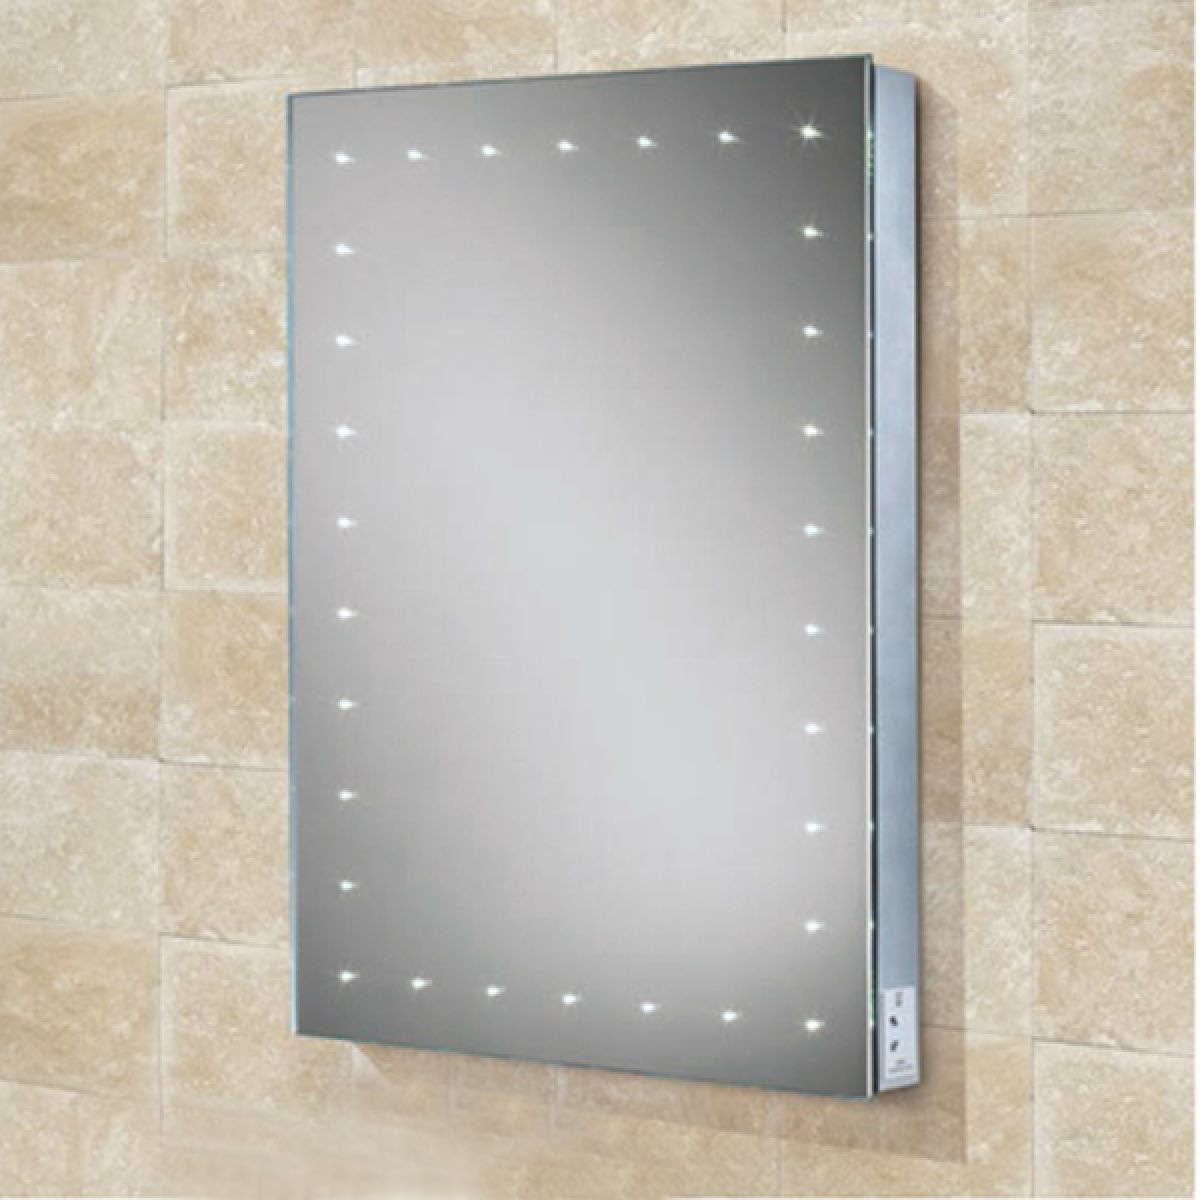 HiB Astral Illuminated Bathroom Mirror